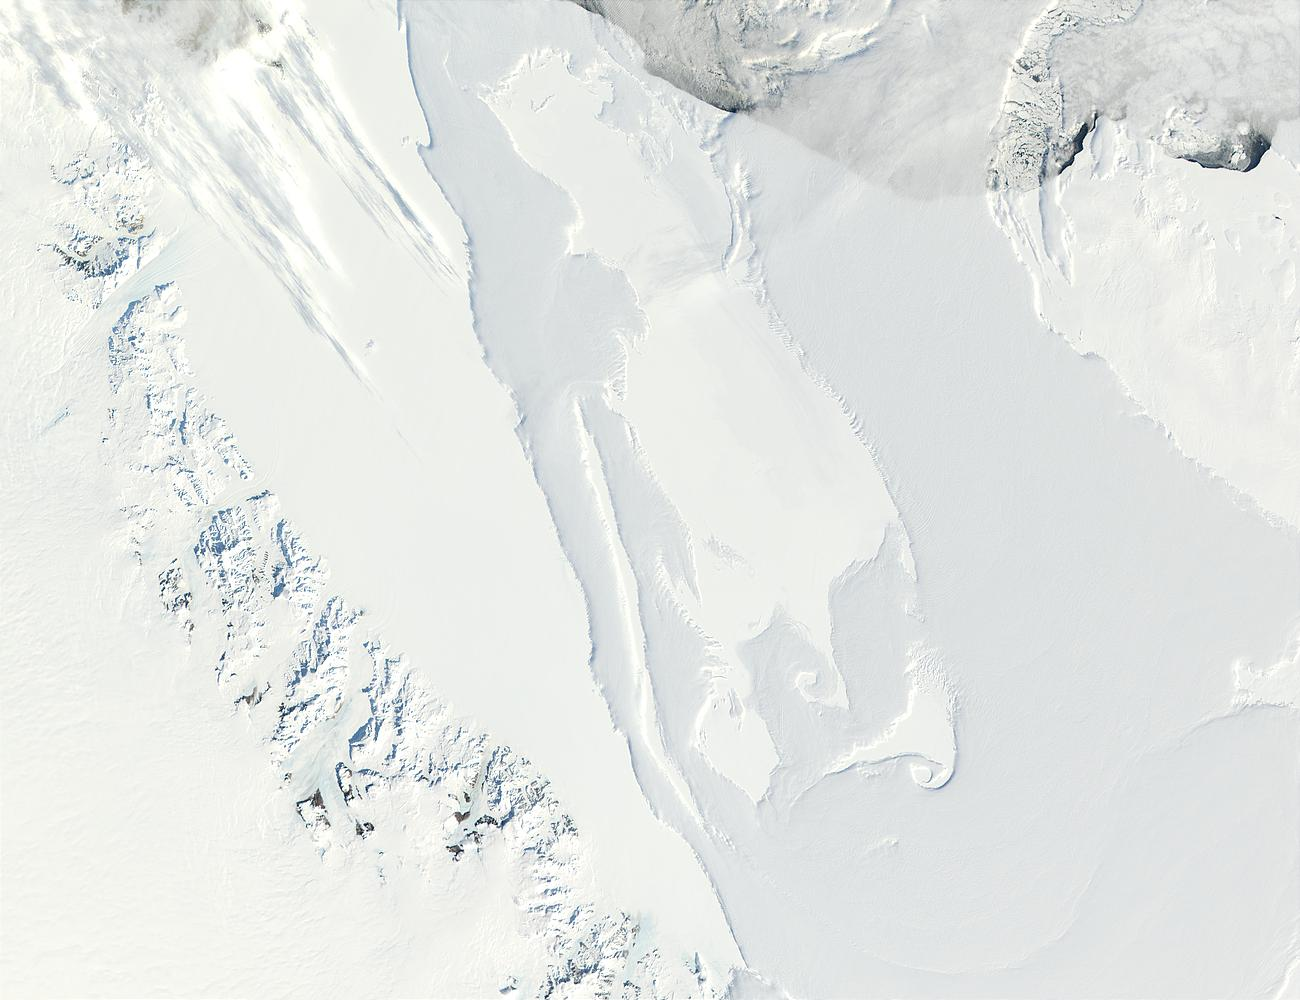 Transantarctic Mountains and Ross Ice Shelf, Antarctica - related image preview